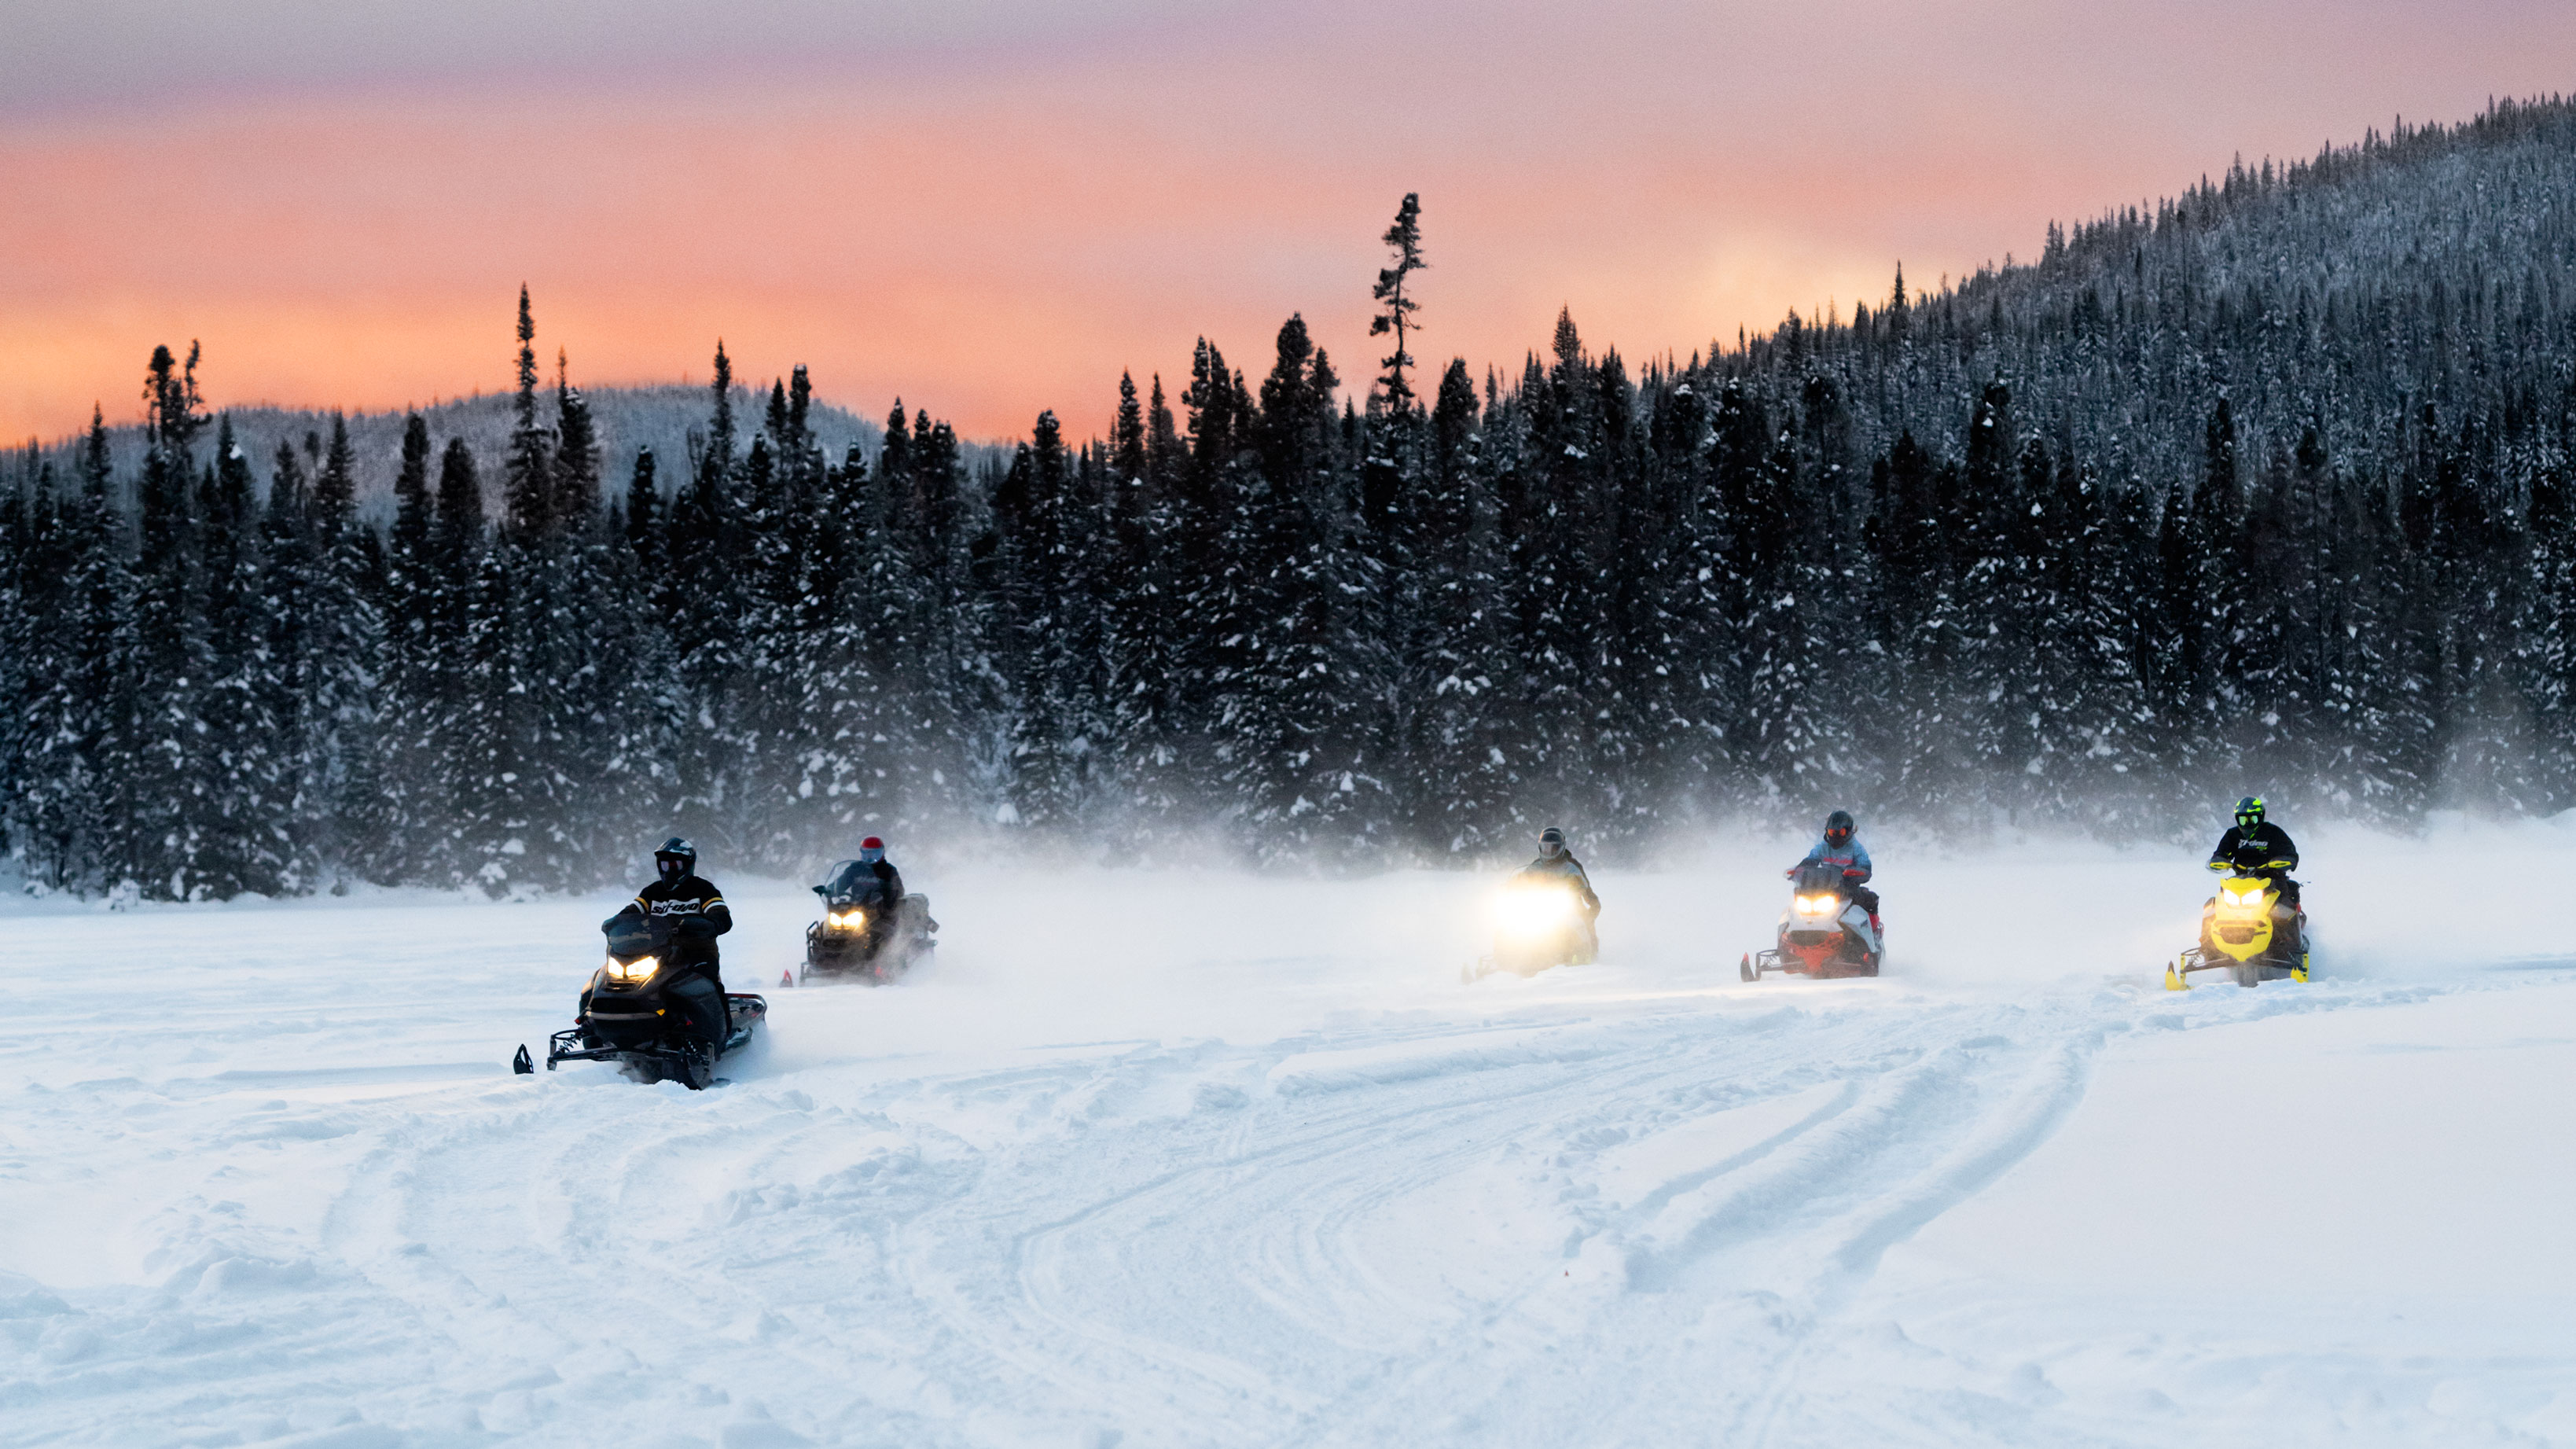 Ski-Doo Trail snowmobiles riding in group